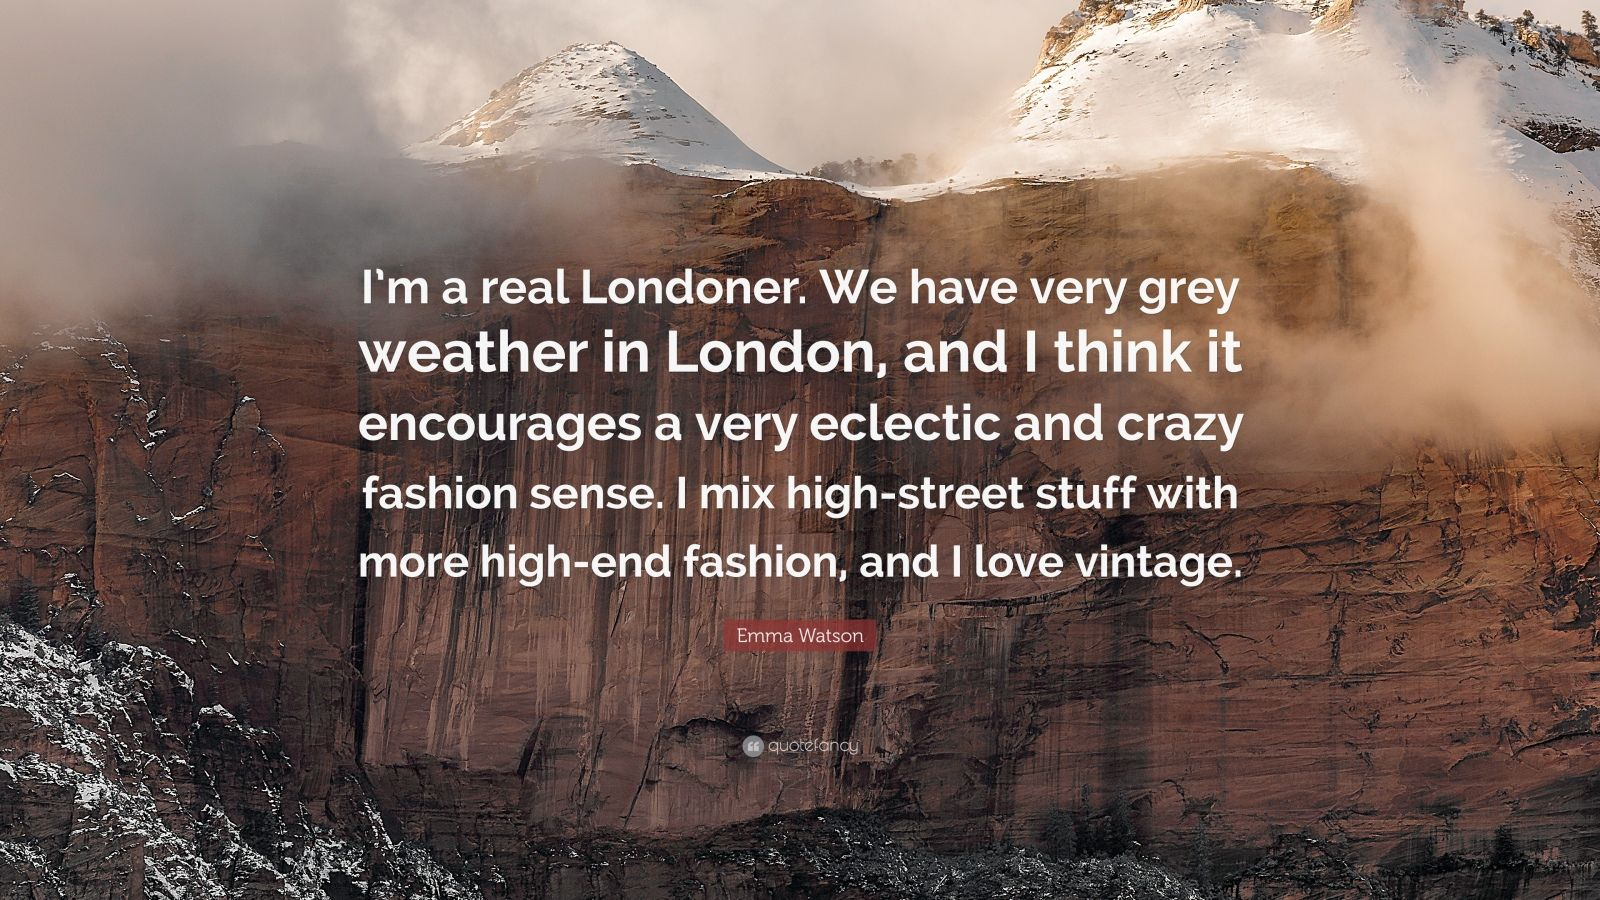 "Emma Watson Quote: ""I'm a real Londoner. We have very grey weather in London, and I think it encourages a very eclectic and crazy fashion sense. I mix high-street stuff with more high-end fashion, and I love vintage."""